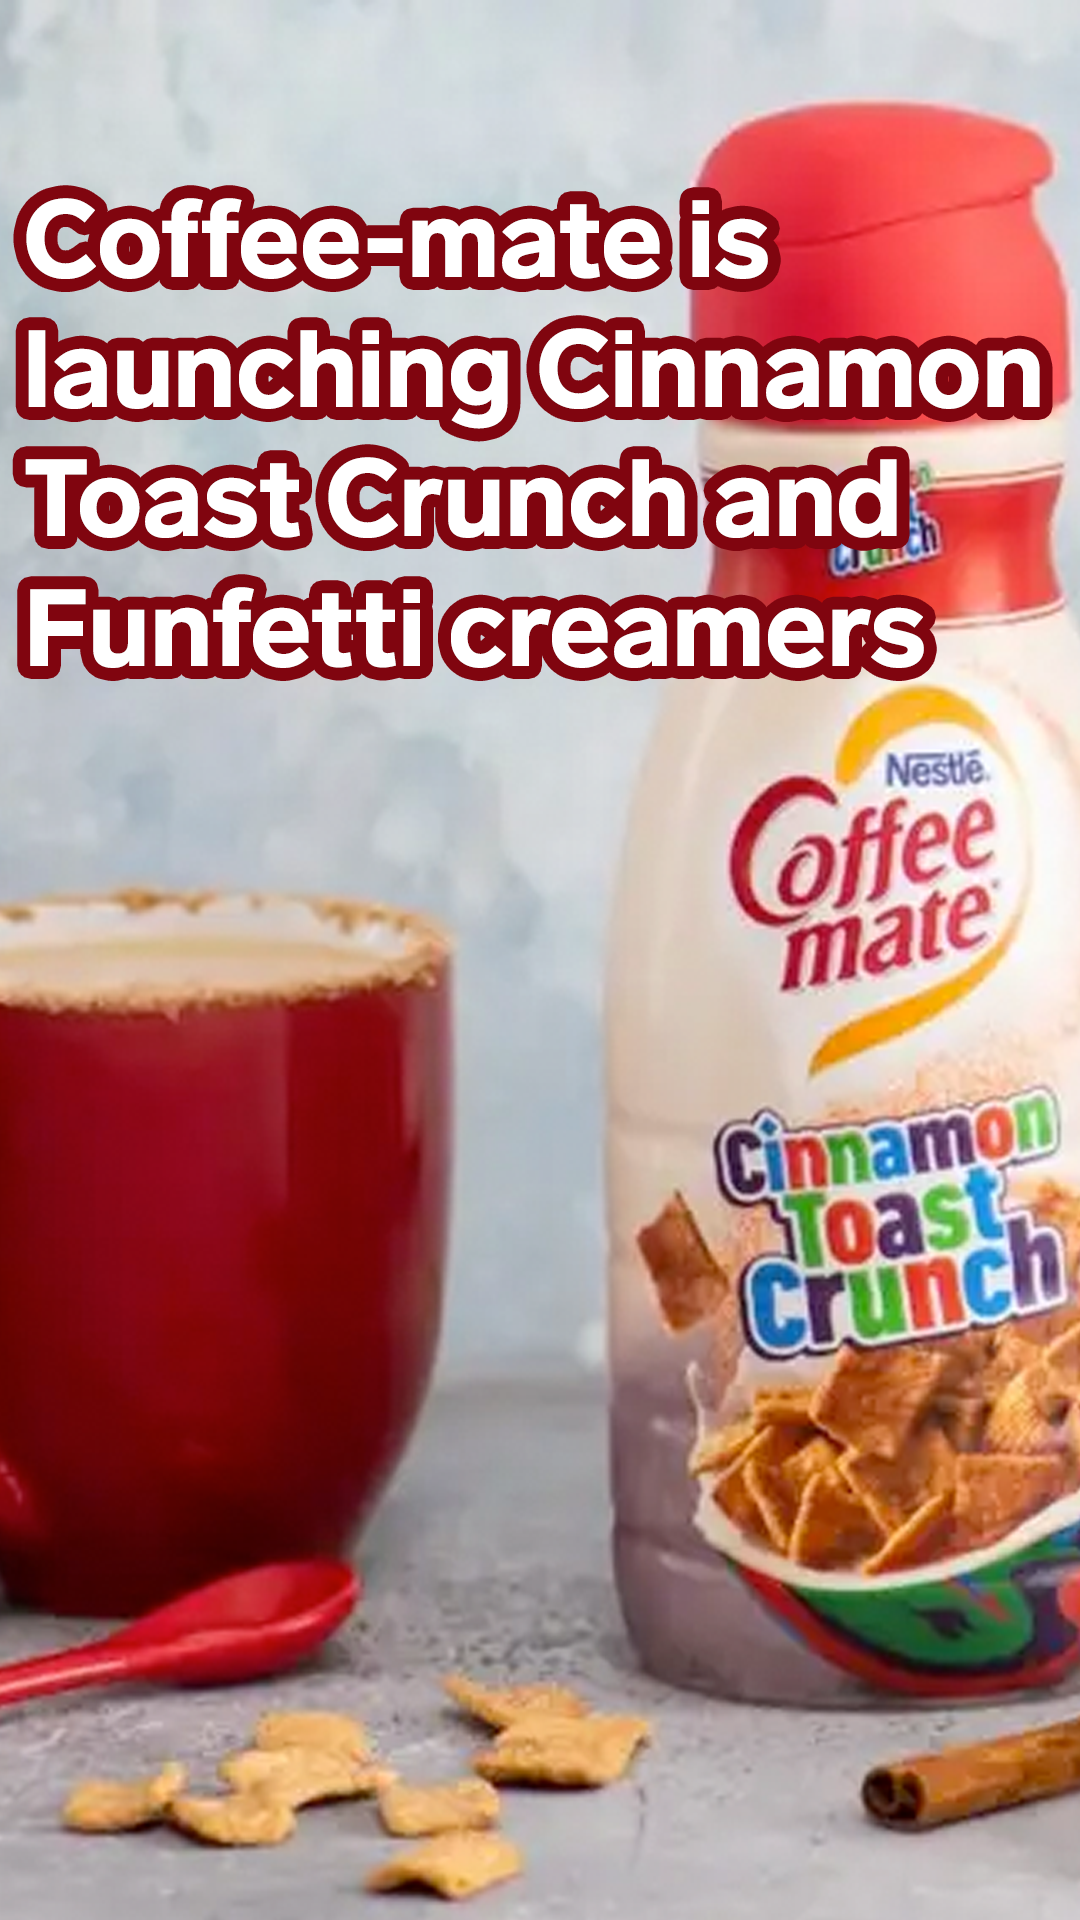 Coffee-mate is launching Cinnamon Toast Crunch and Funfetti creamers (With images) | Cinnamon ...